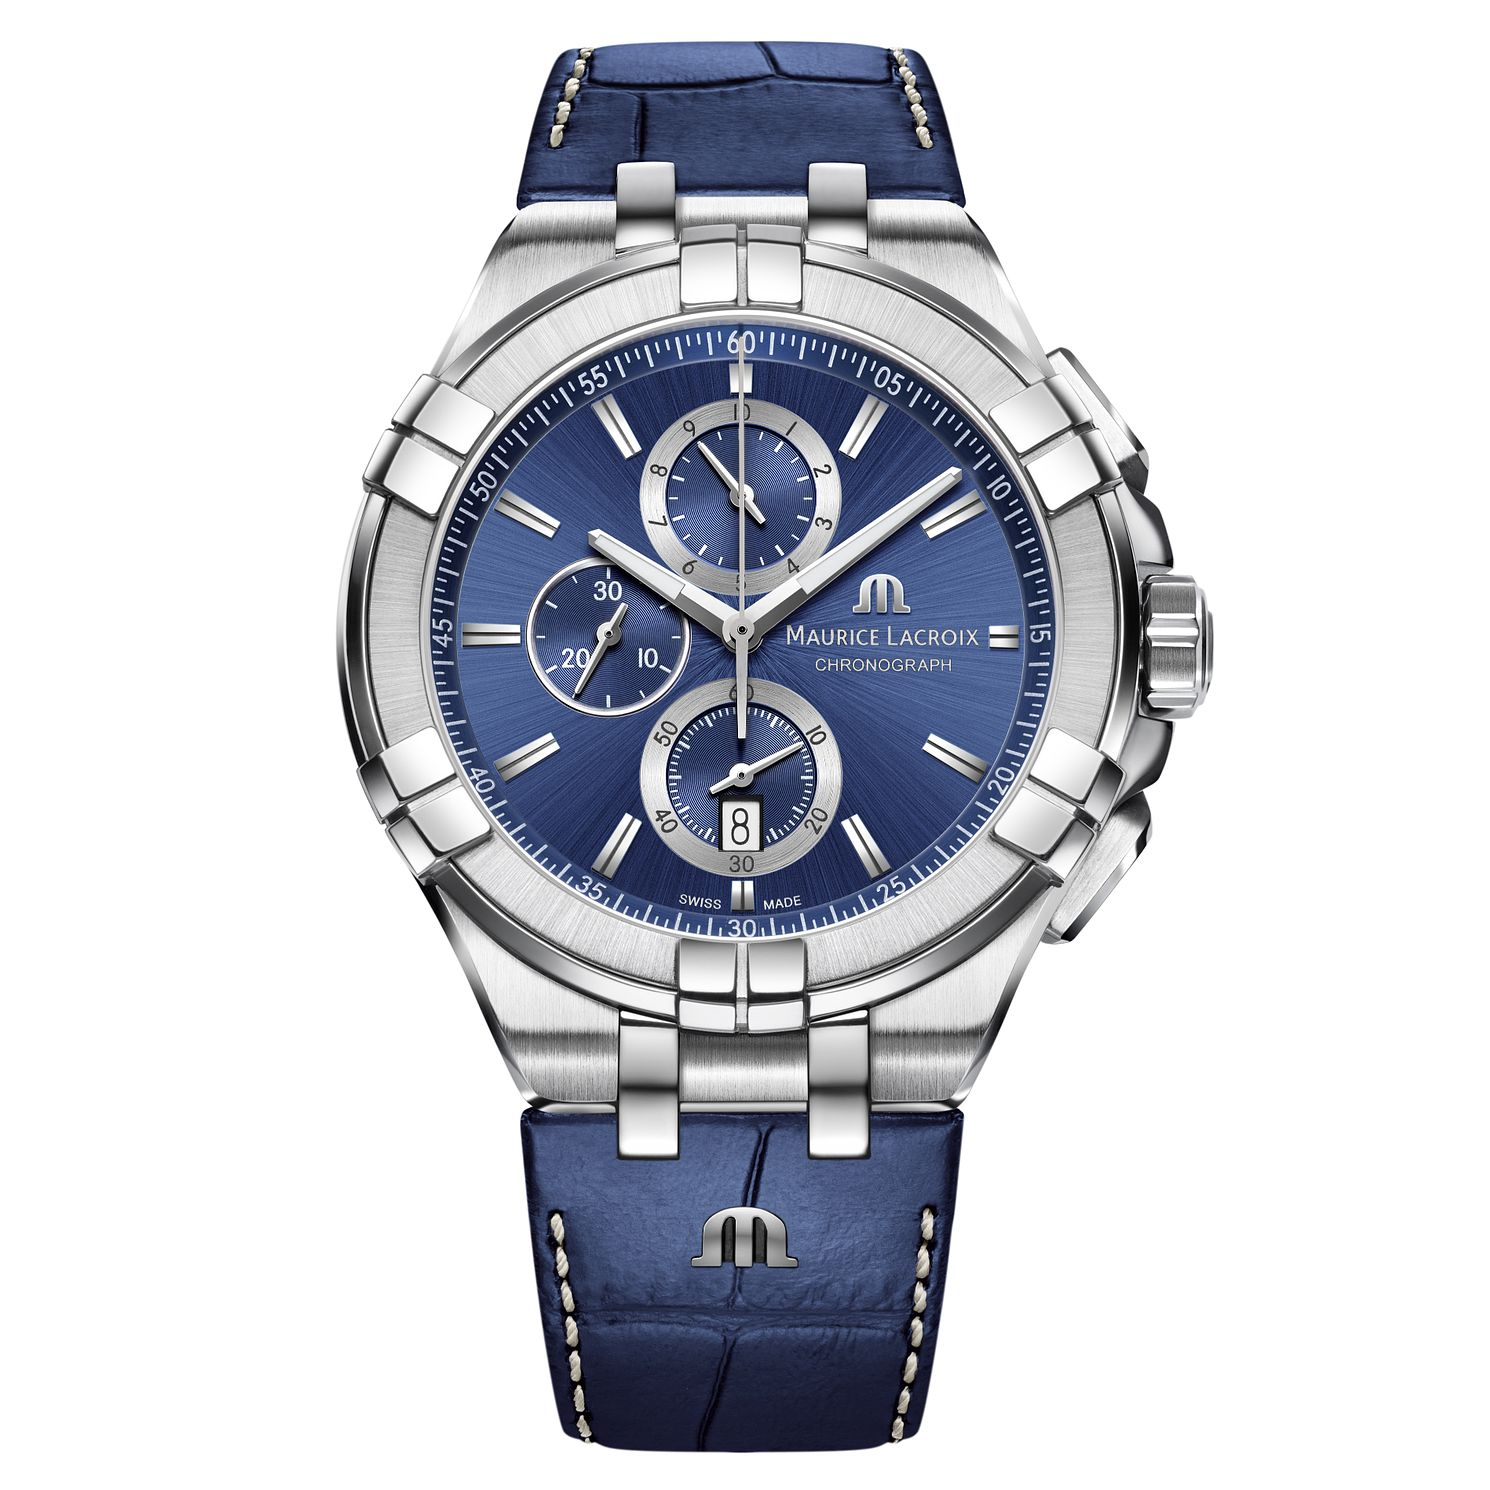 Maurice Lacroix Aikon Men's Blue Leather Strap Watch - Product number 9429883